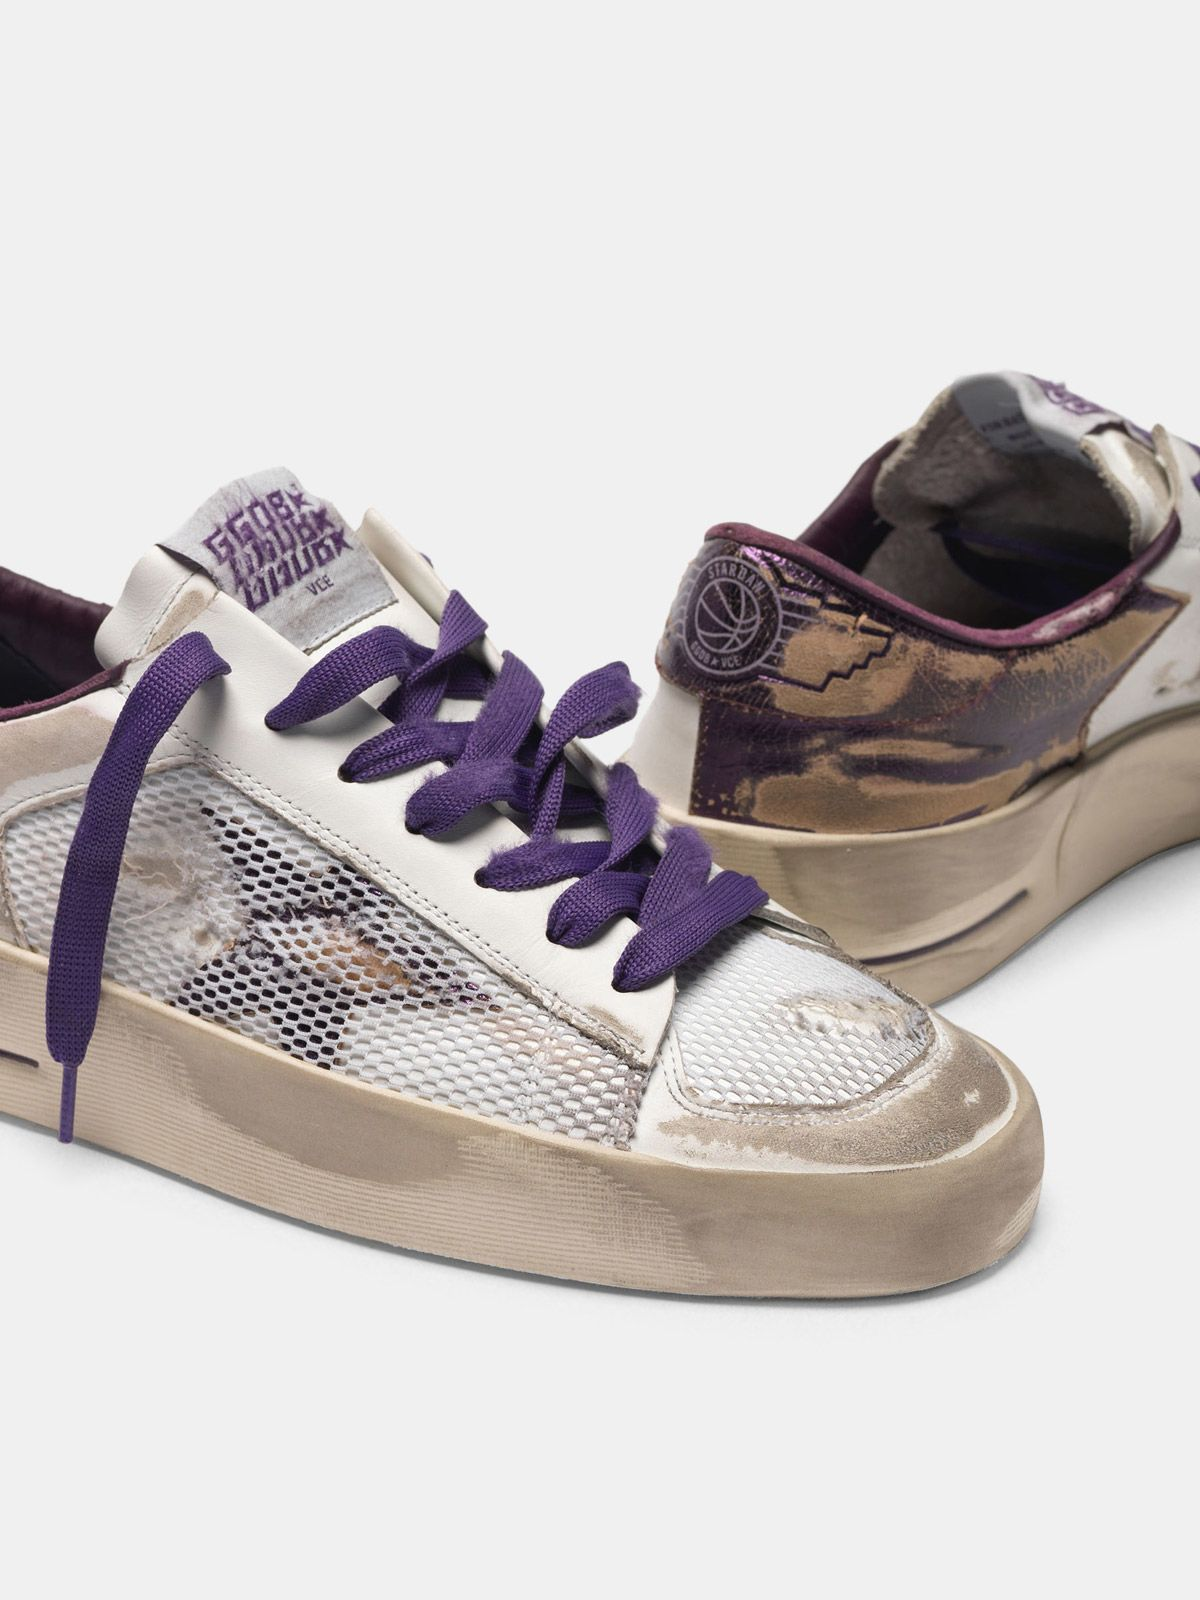 Golden Goose - Distressed white and purple Stardan LTD sneakers  in